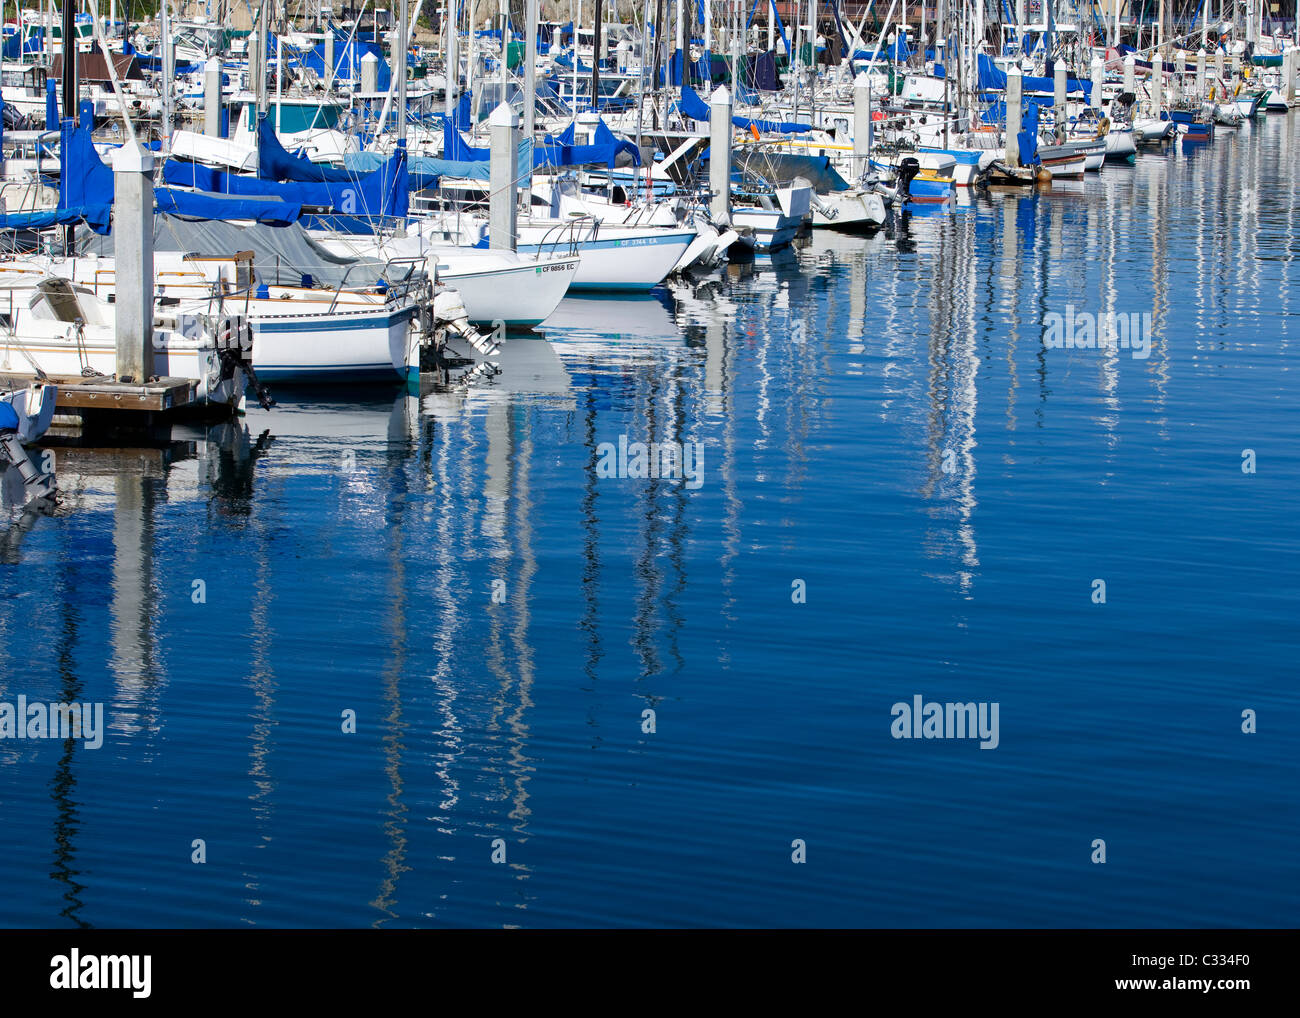 Small sail boats docked in marina slips - Stock Image